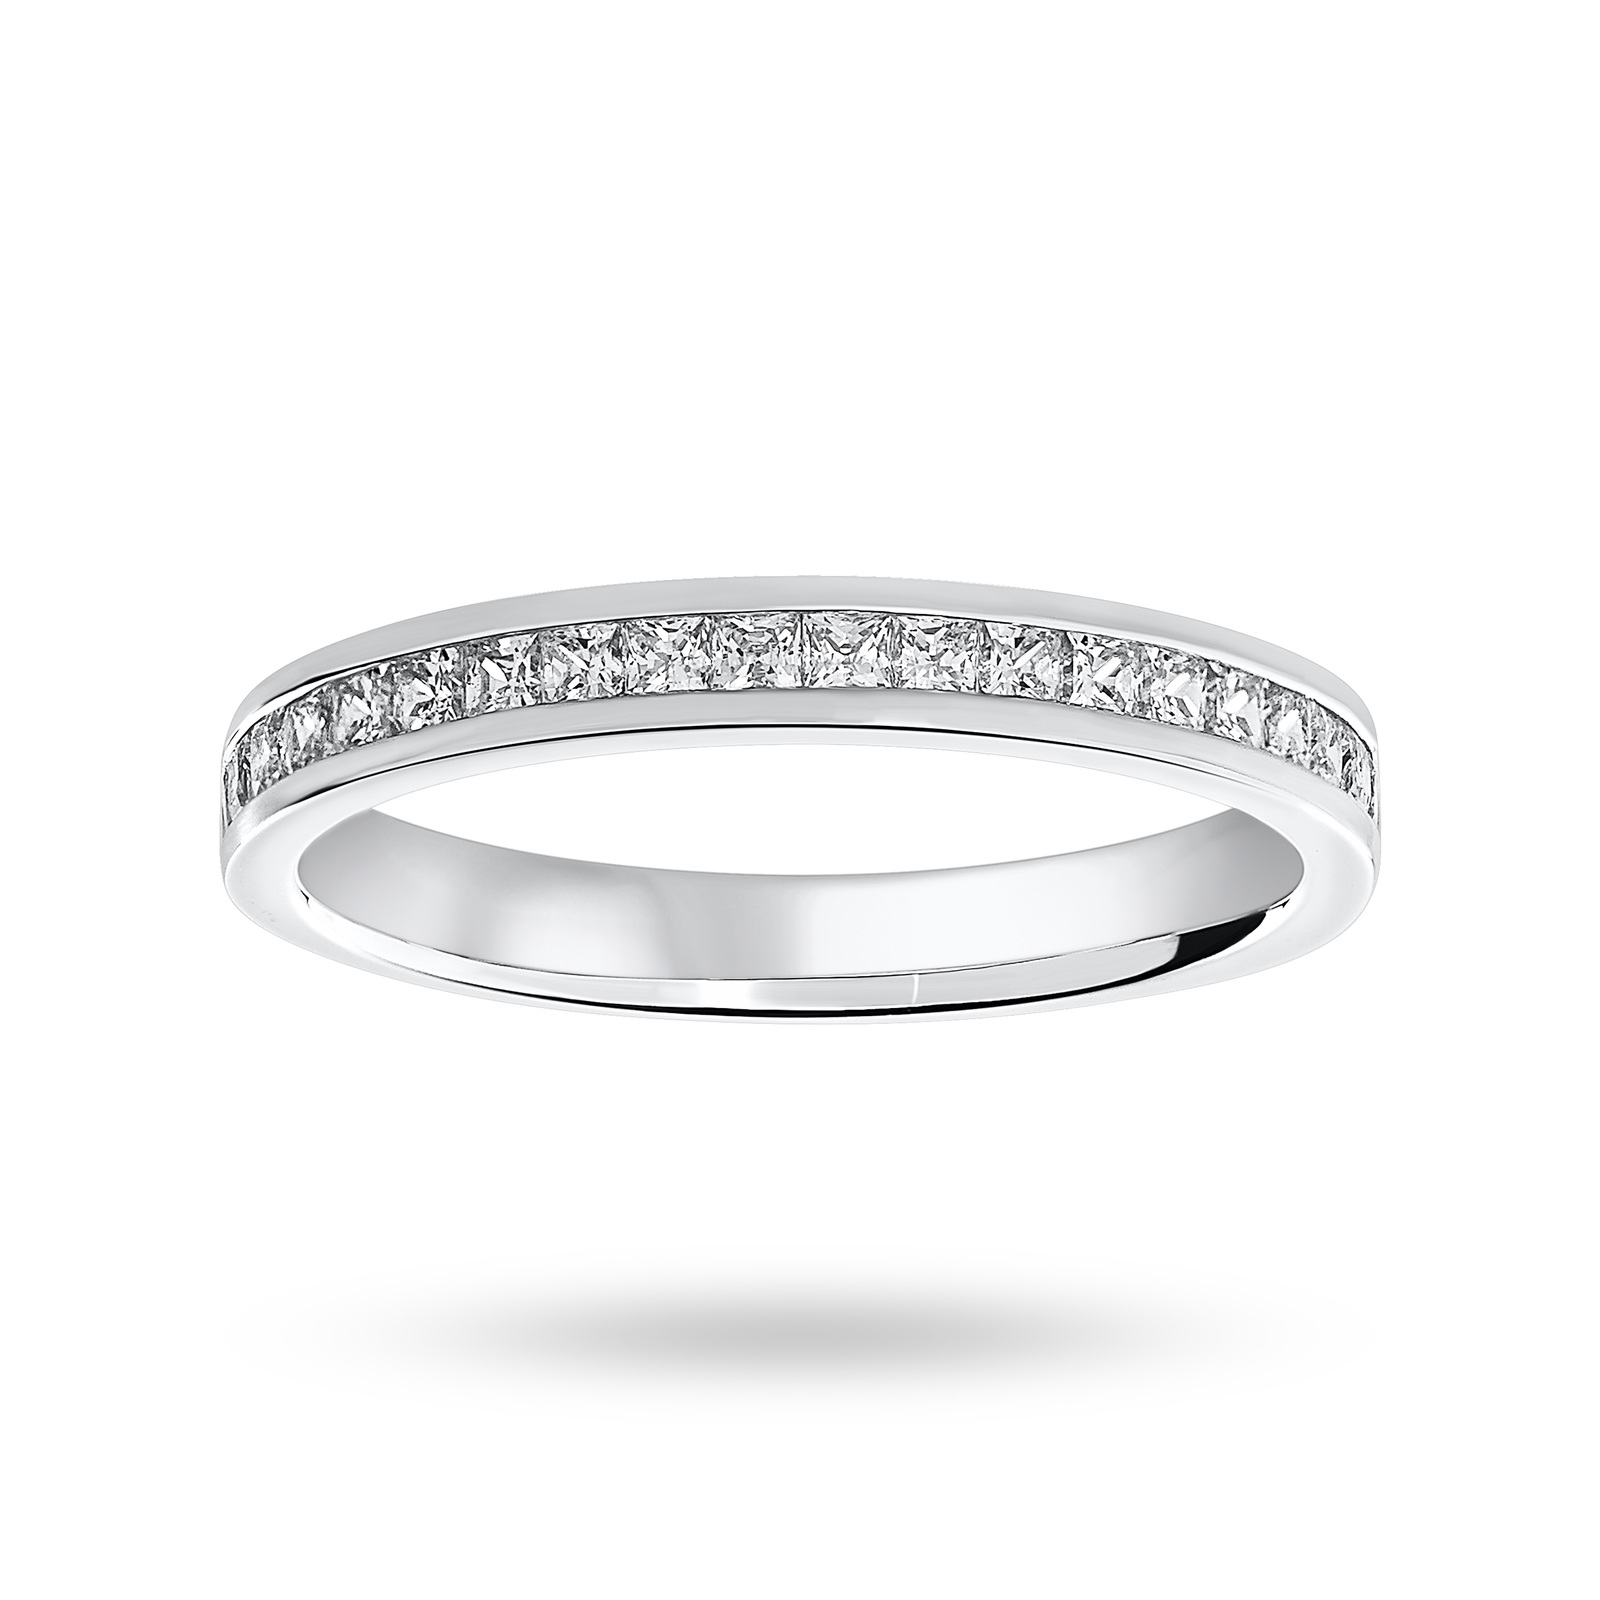 18 Carat White Gold 0.50 Carat Princess Cut Half Eternity Ring